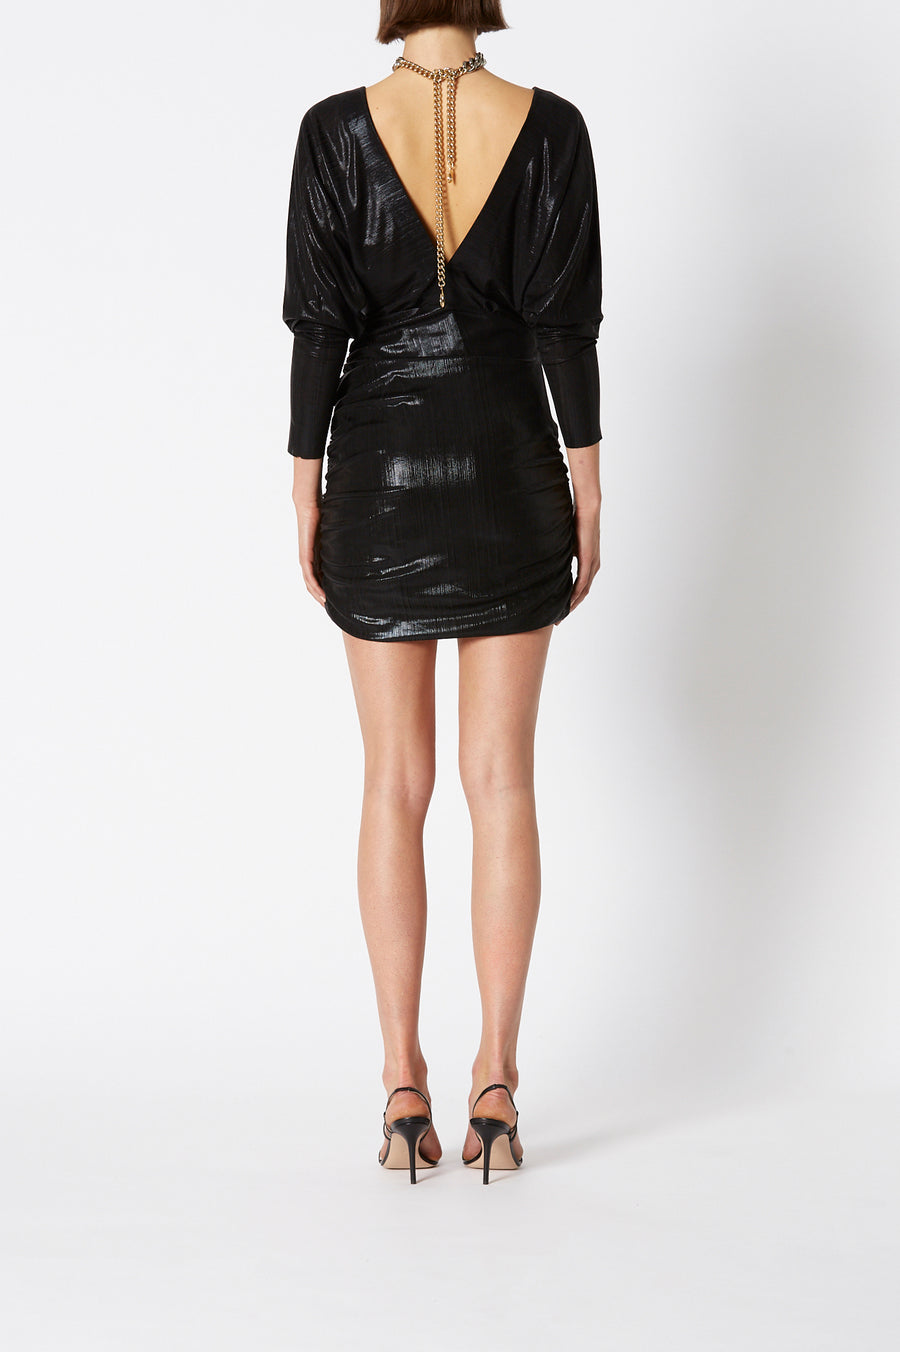 Lacquer Jersey Dress in shimmering black features a plunging neckline and ruched fitted skirt, color black